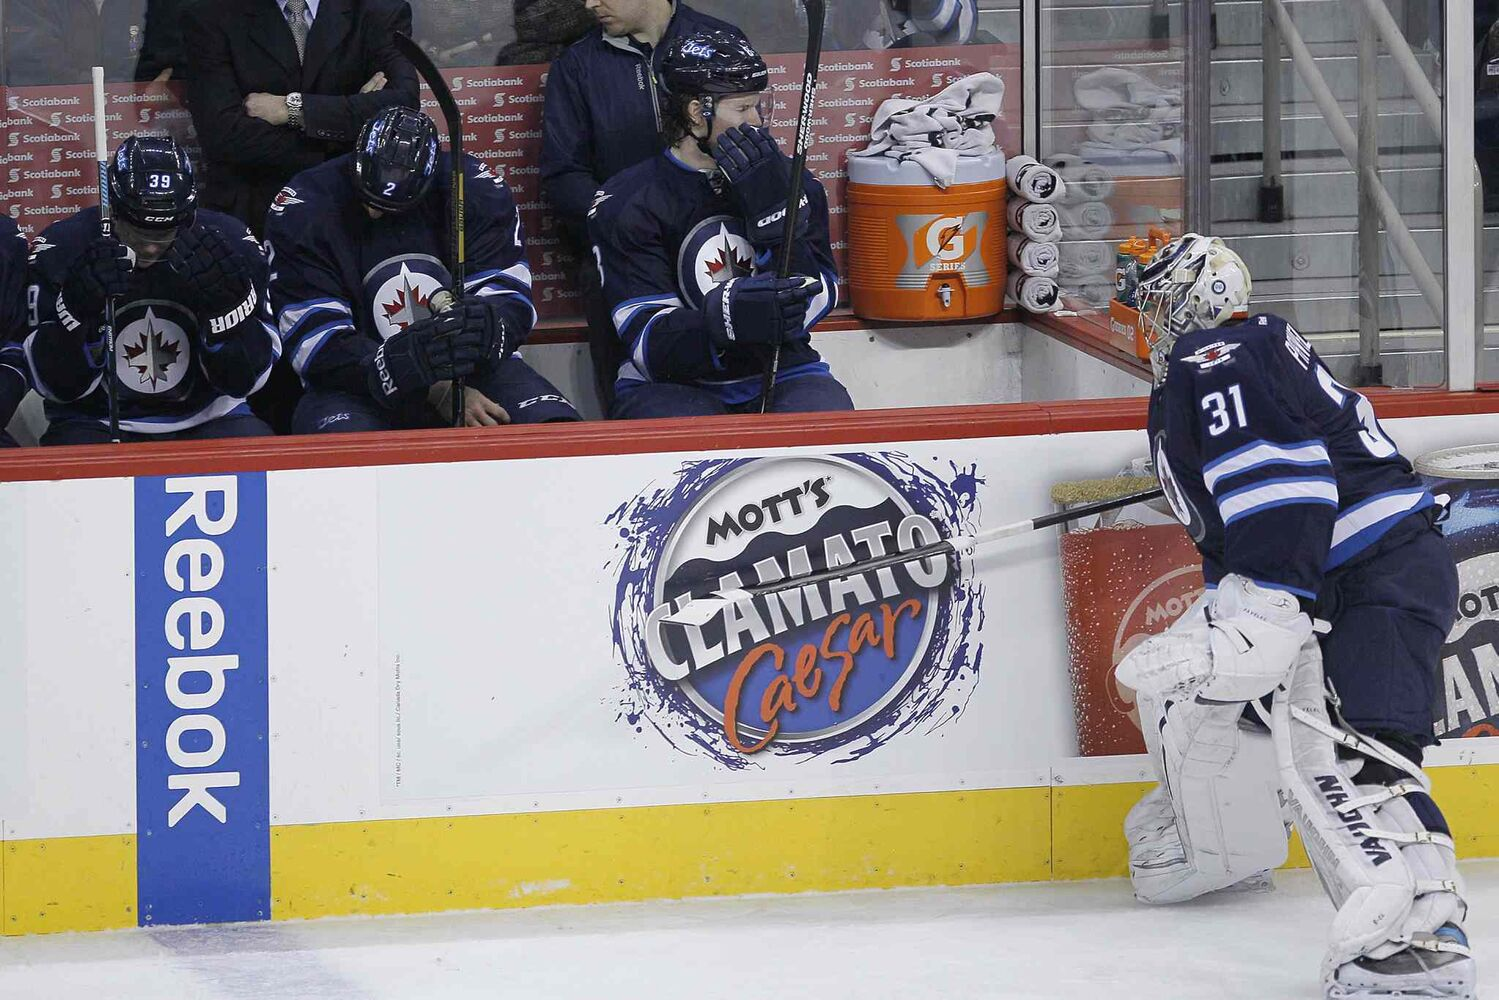 Winnipeg Jets goaltender Ondrej Pavelec (right) slams his stick against the boards in anger after being pulled during the first period.